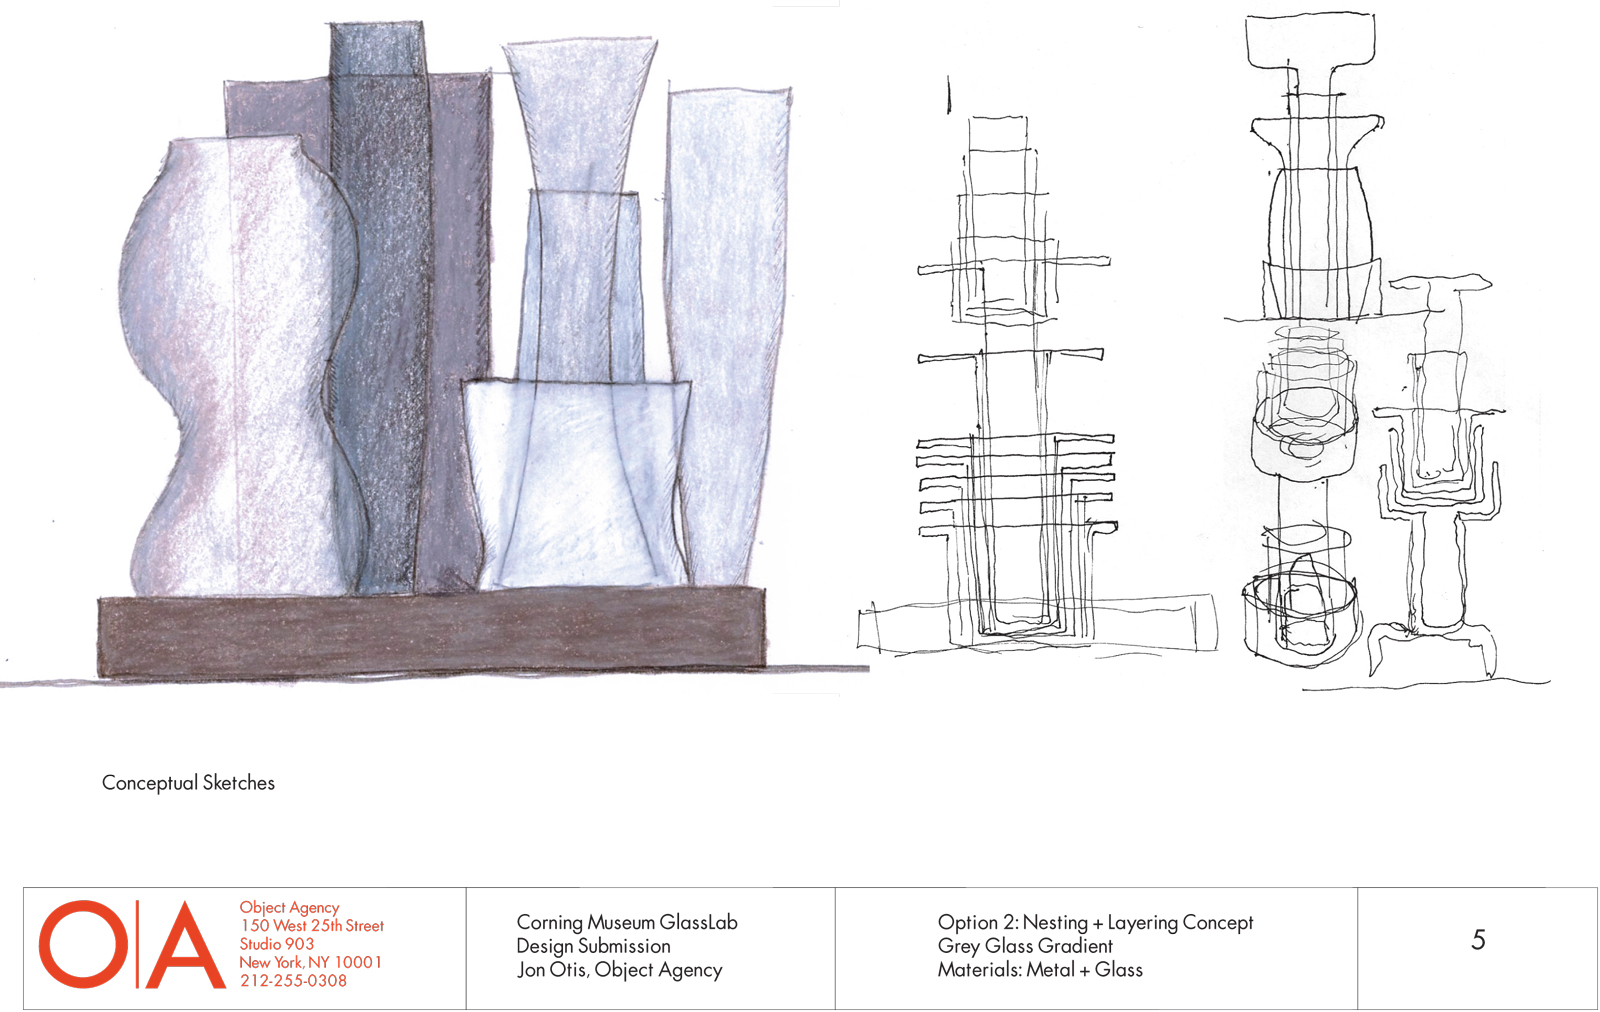 Design concept by Jon Otis for GlassLab, July 2012